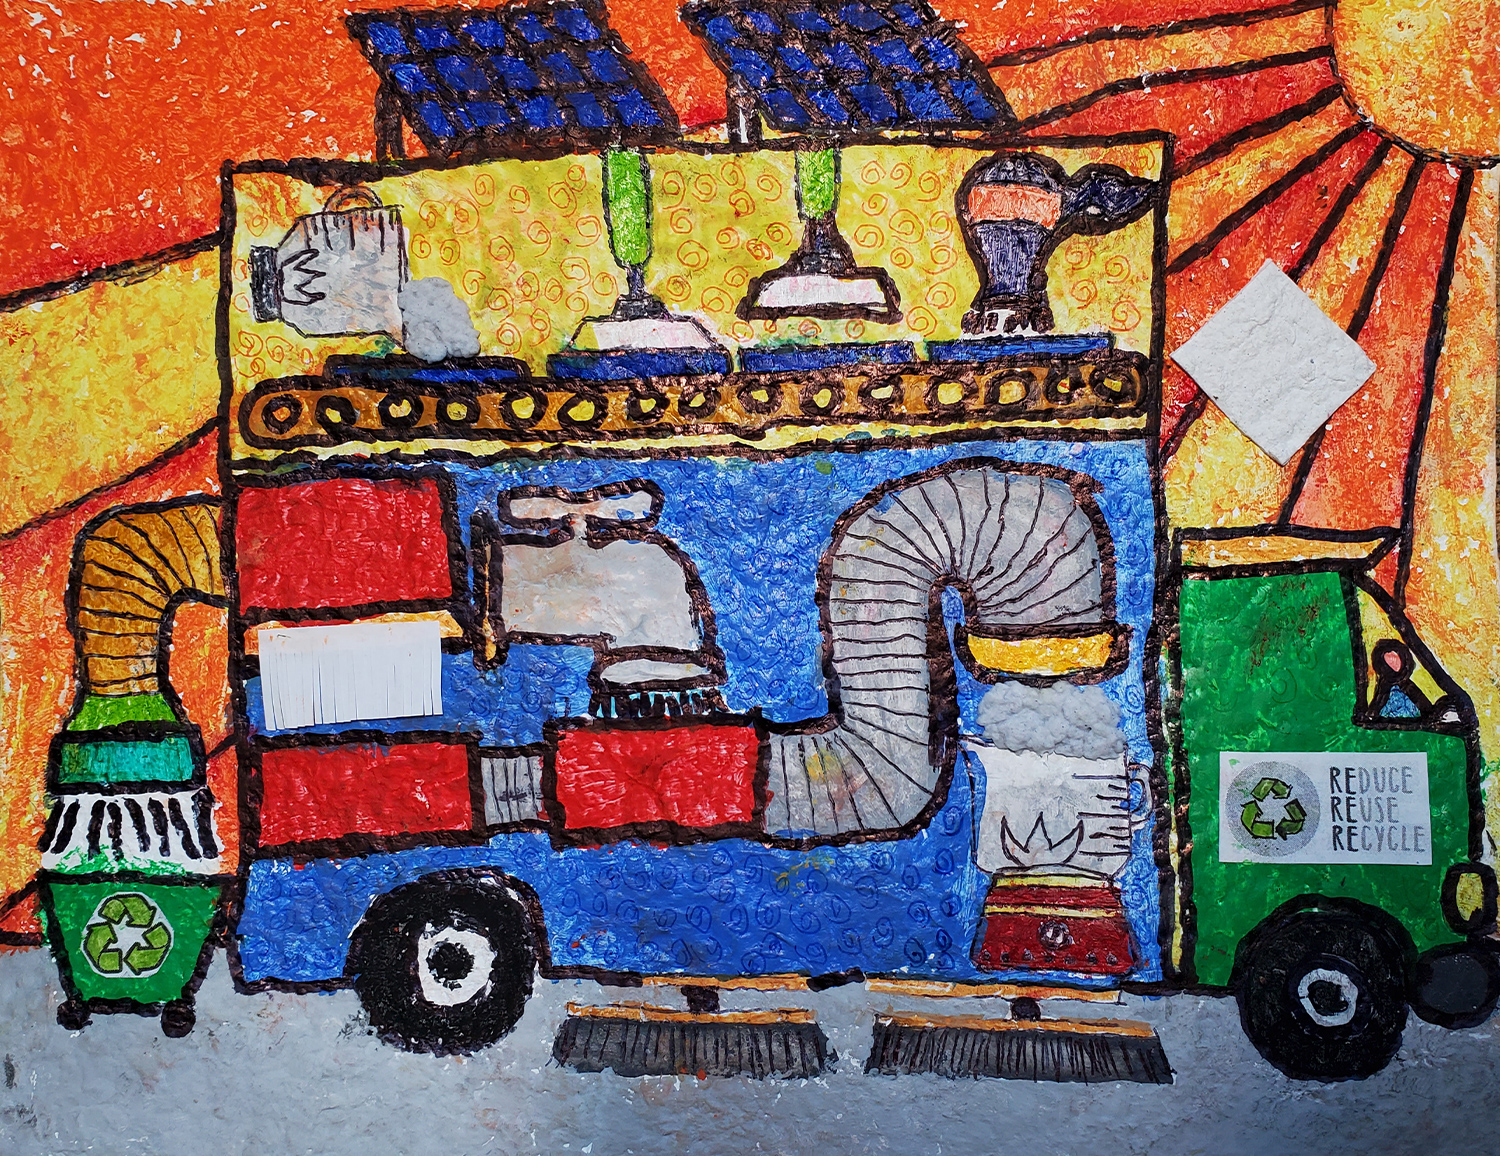 Earth Saver Car, Juan Miguel Gallermo, age 7